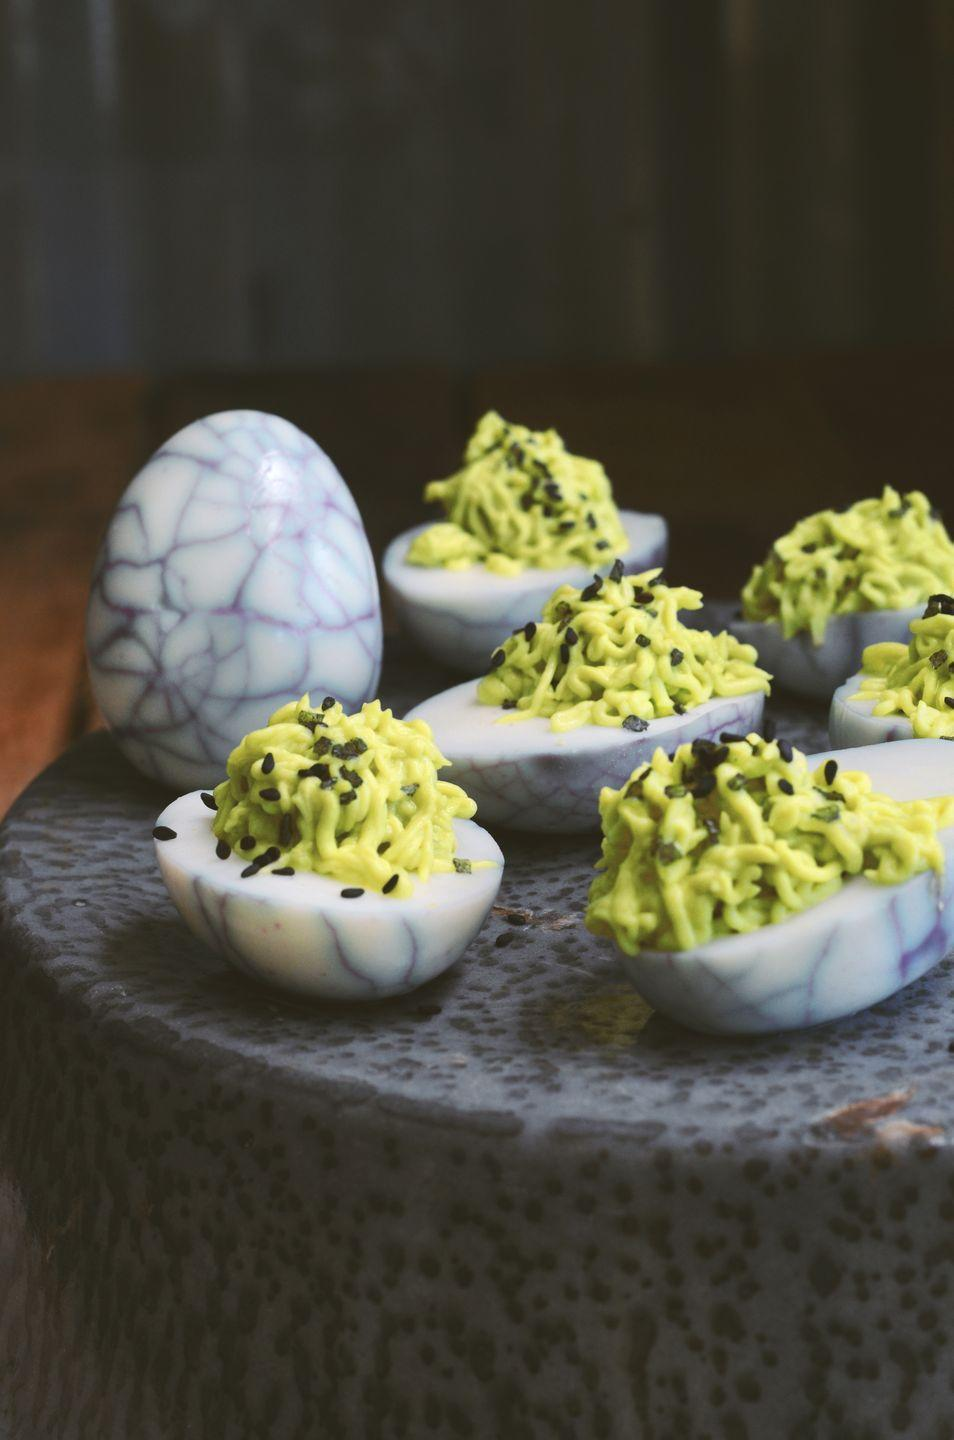 "<p>This uber-creative (and strangely pretty!) take on deviled eggs will be the talk of your party. </p><p><a class=""link rapid-noclick-resp"" href=""https://familyspice.com/spider-eggs-avocado-wasabi-deviled-eggs/"" rel=""nofollow noopener"" target=""_blank"" data-ylk=""slk:GET THE RECIPE"">GET THE RECIPE</a></p>"